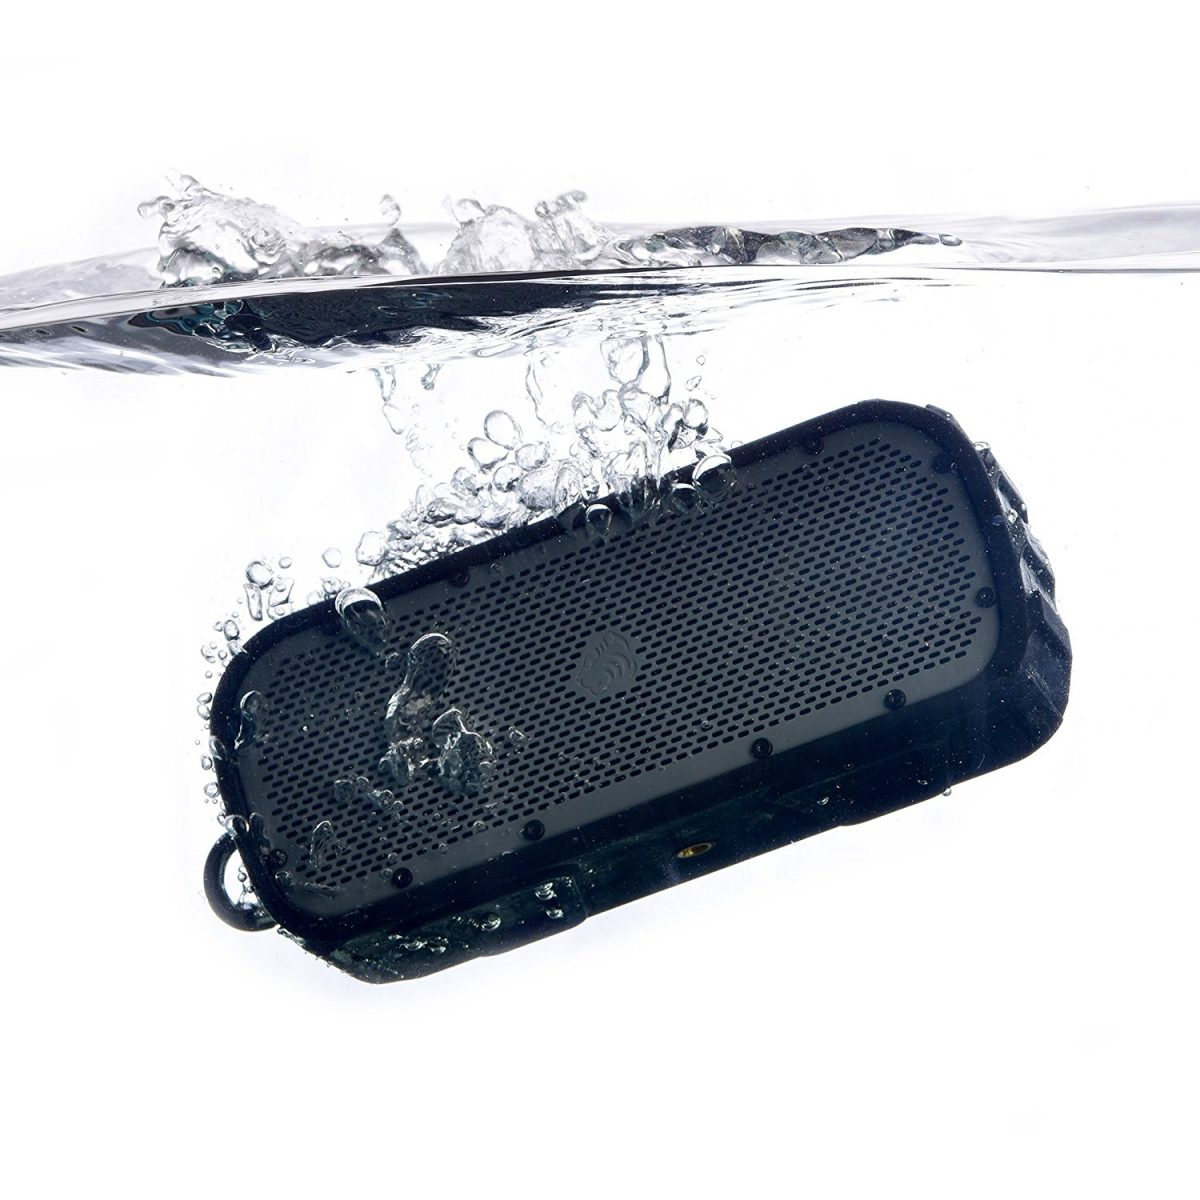 Speakers Mobile Phones & Gear iPhone Gear Audio Visual Gear Android Gear